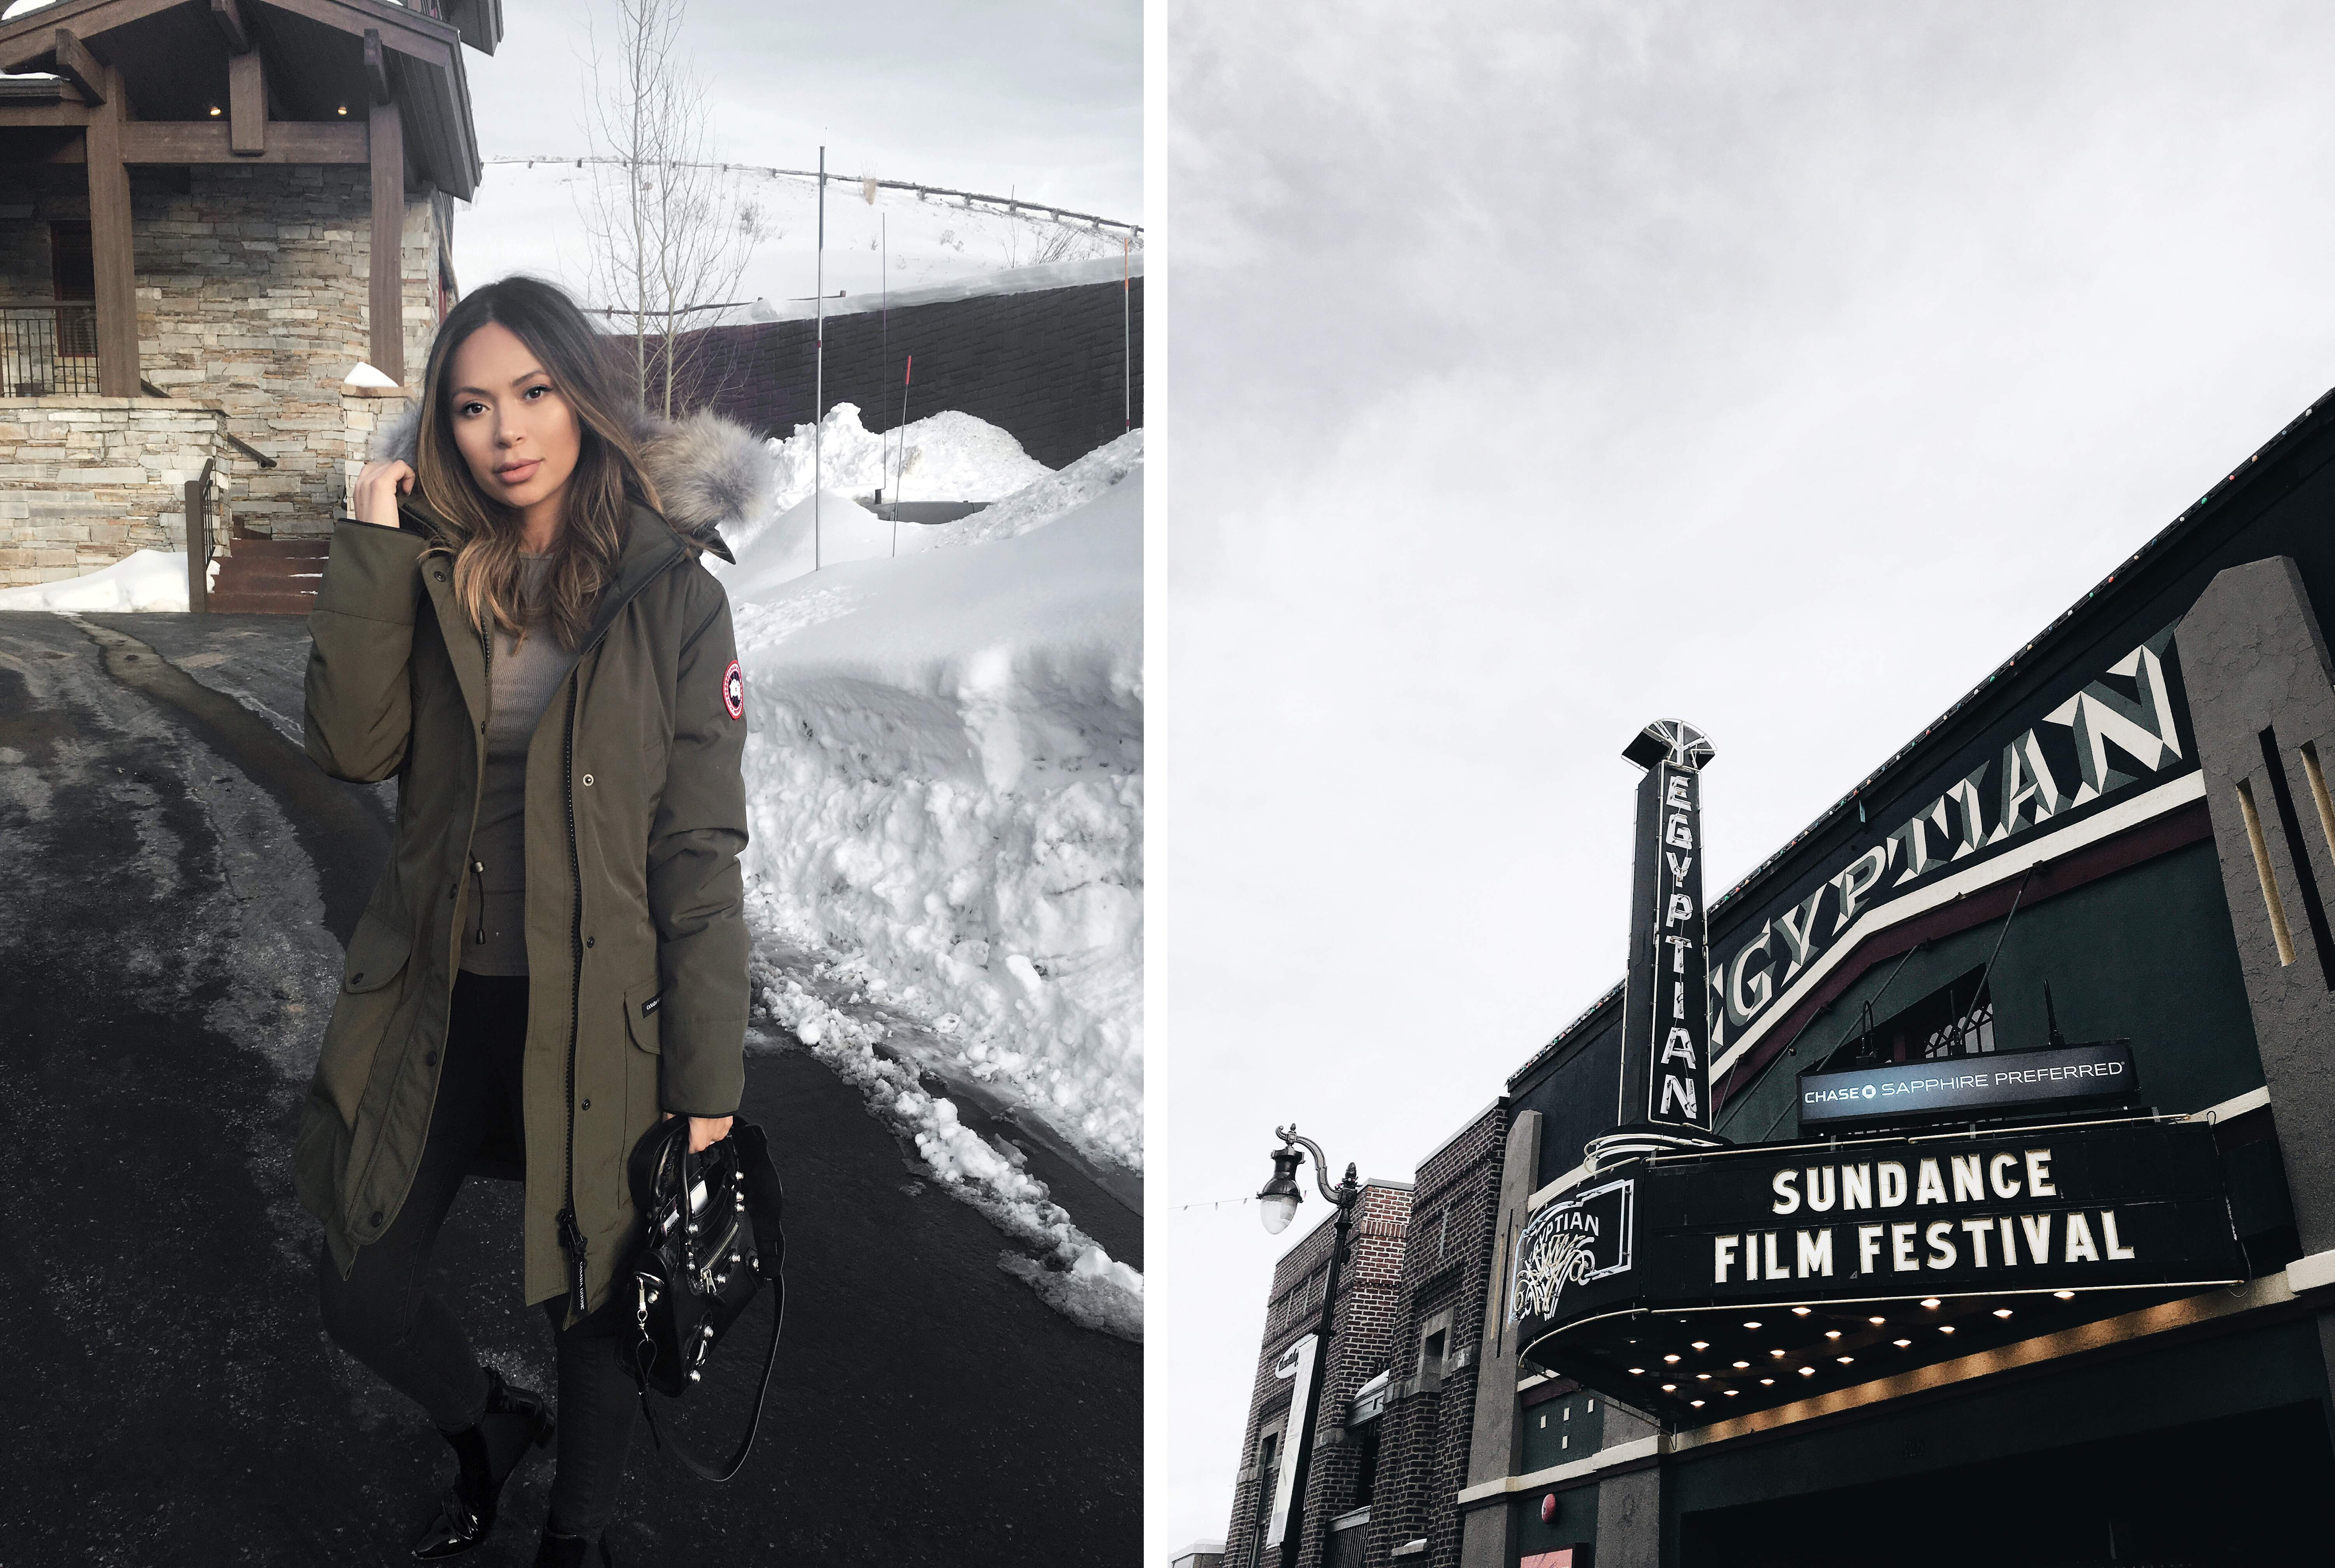 Canada Goose down replica 2016 - Sundance 2016 | Life With Me by Marianna Hewitt | Bloglovin'